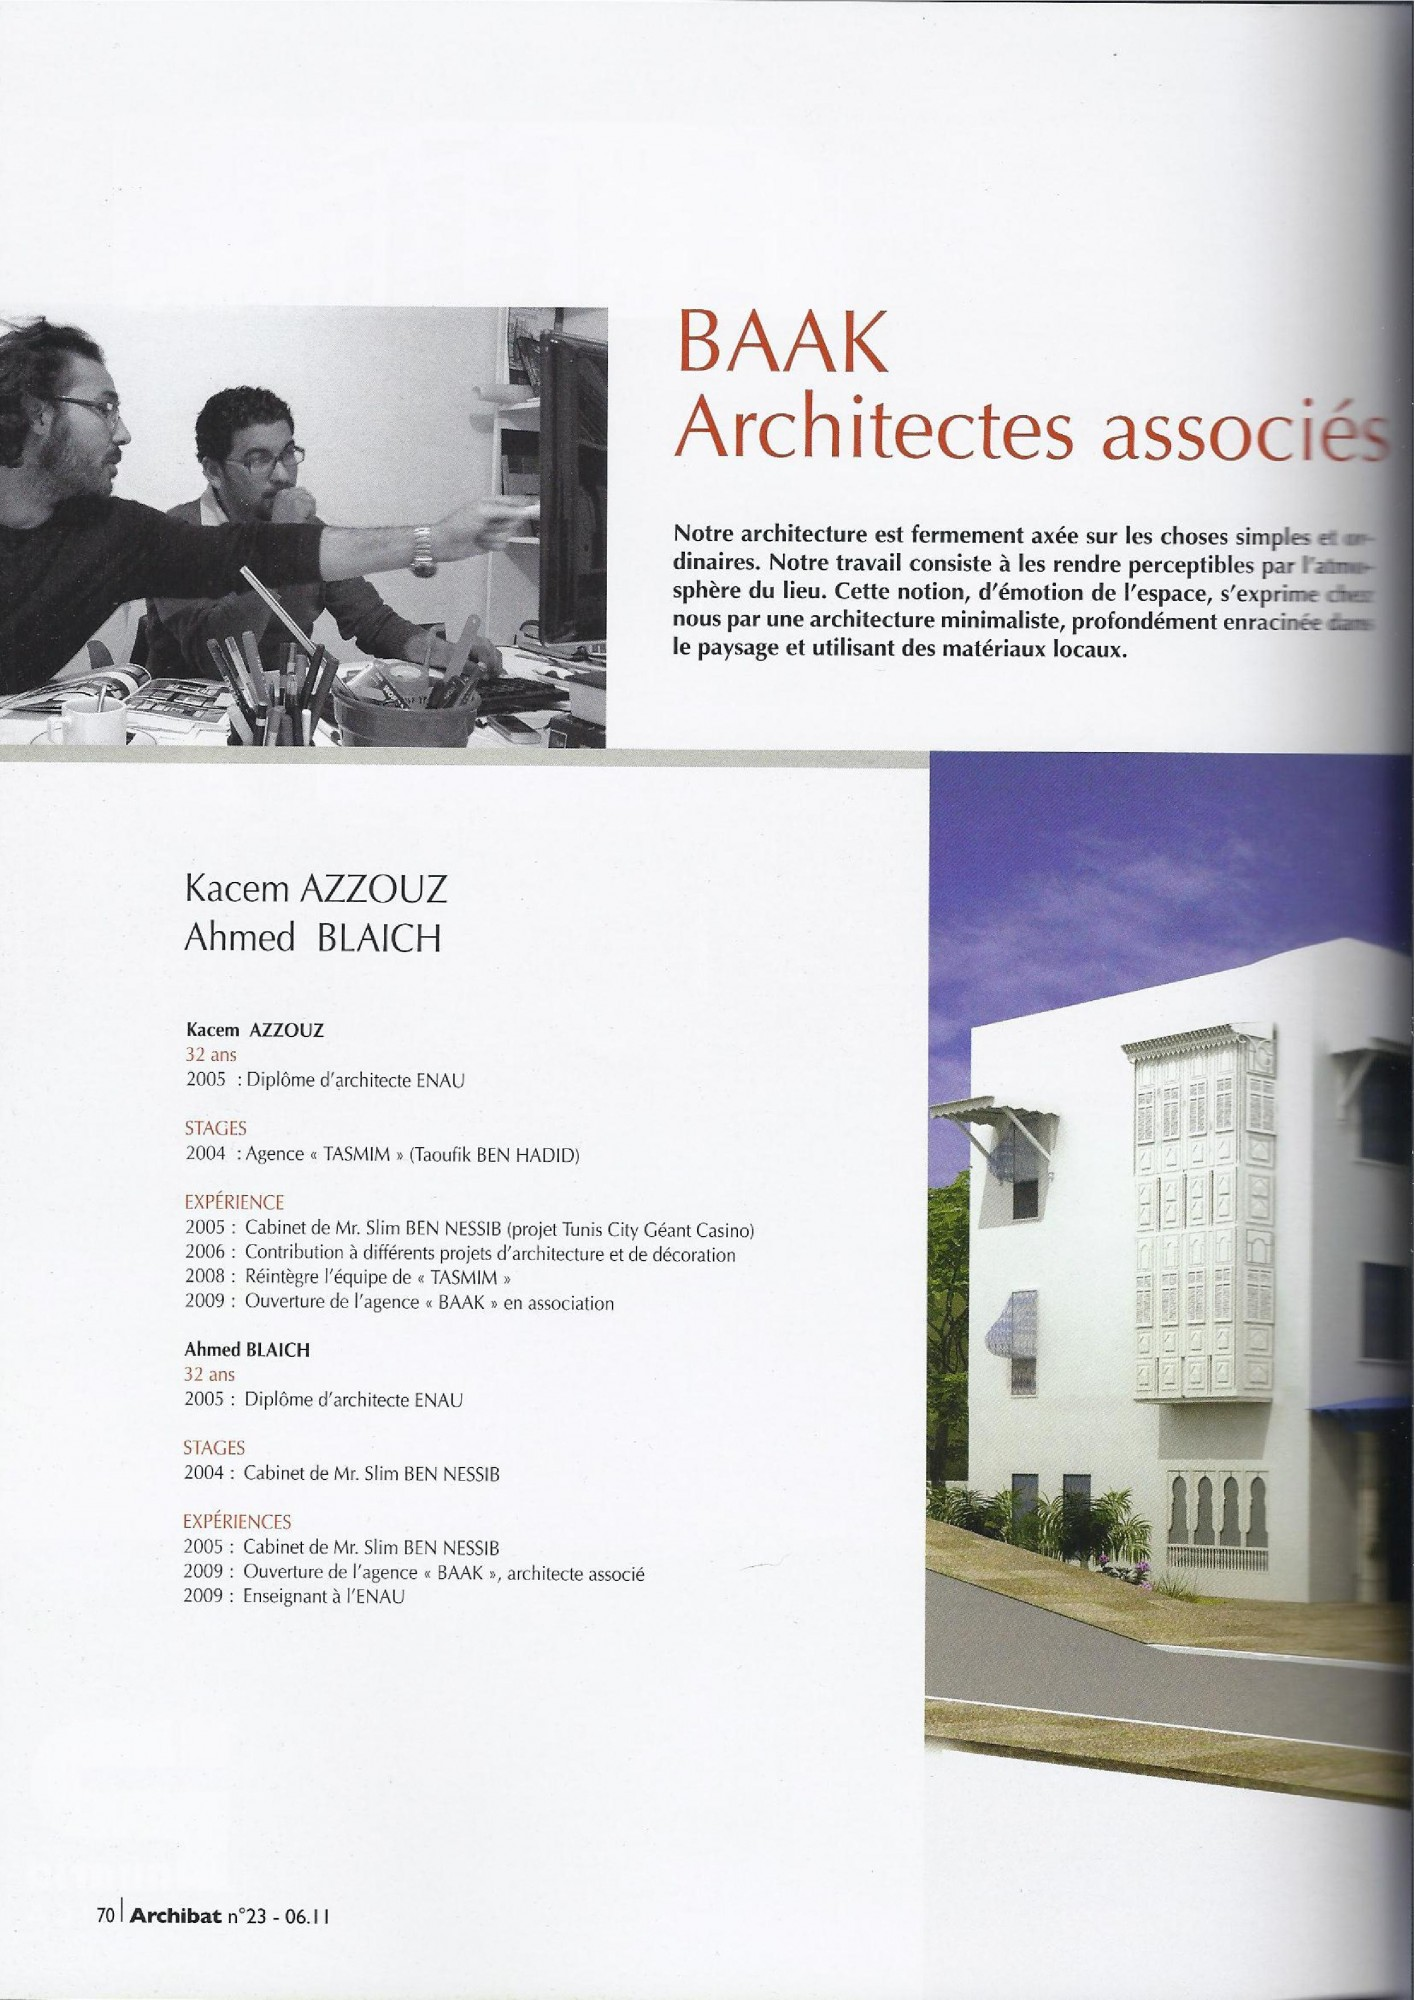 http://www.baakarchitects.com/wp-content/uploads/2015/11/publication-23-page-002-1415x2000.jpg